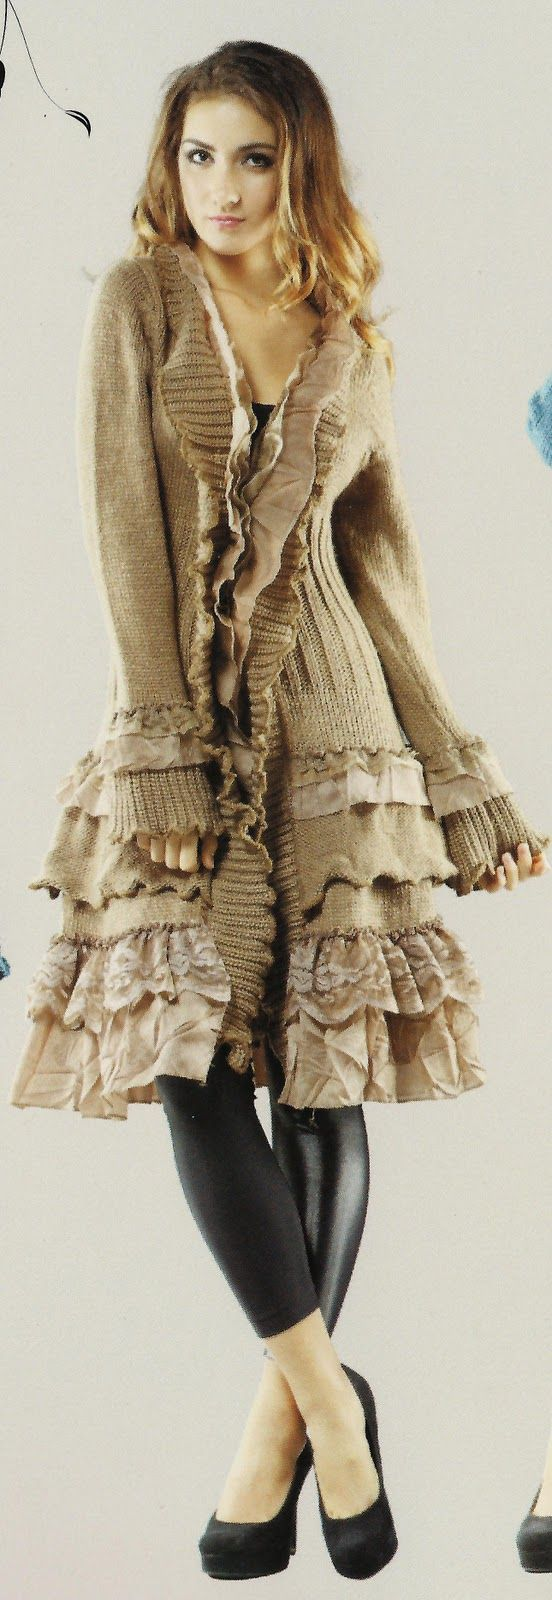 Tattered Rose: Victorian Inspired Sweater-coats. [Lengthened with added sweater and lace ruffles. myb]